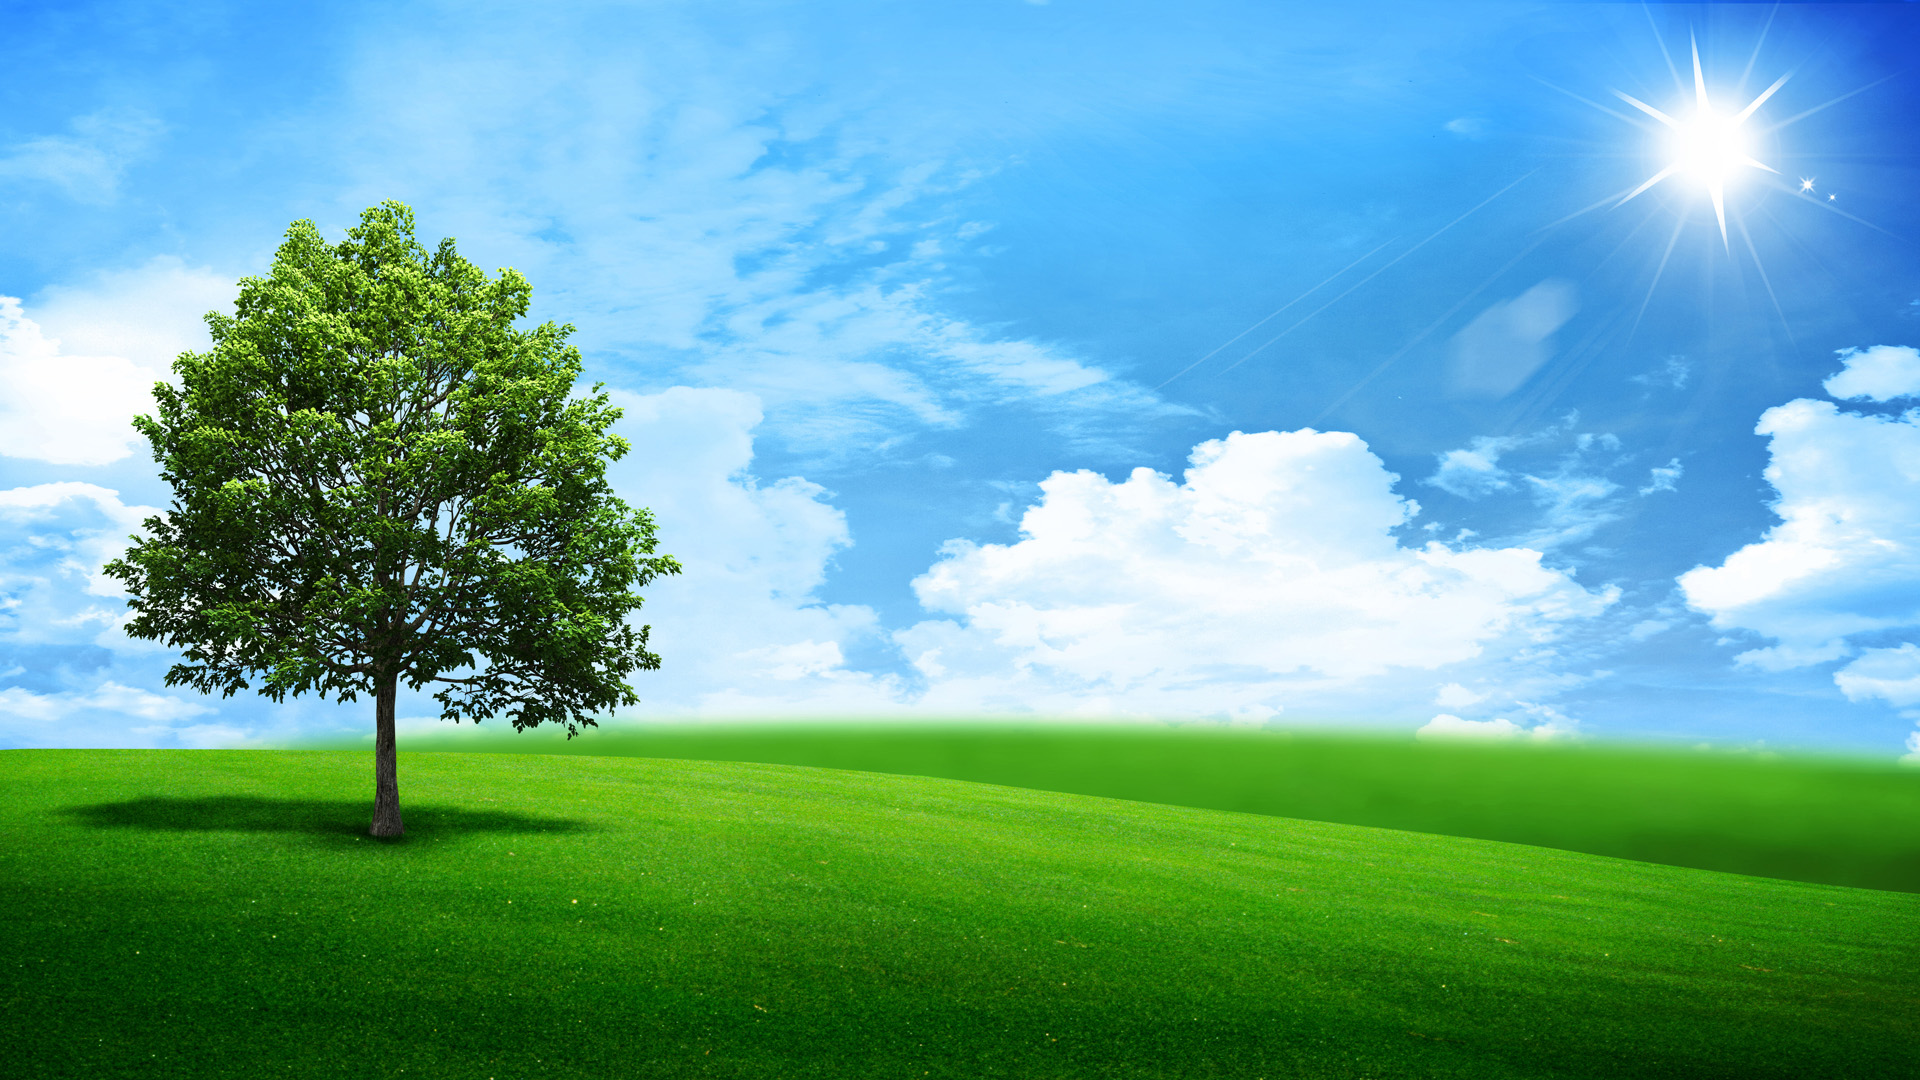 Green Nature Landscape DayWallpaper 1920x1080